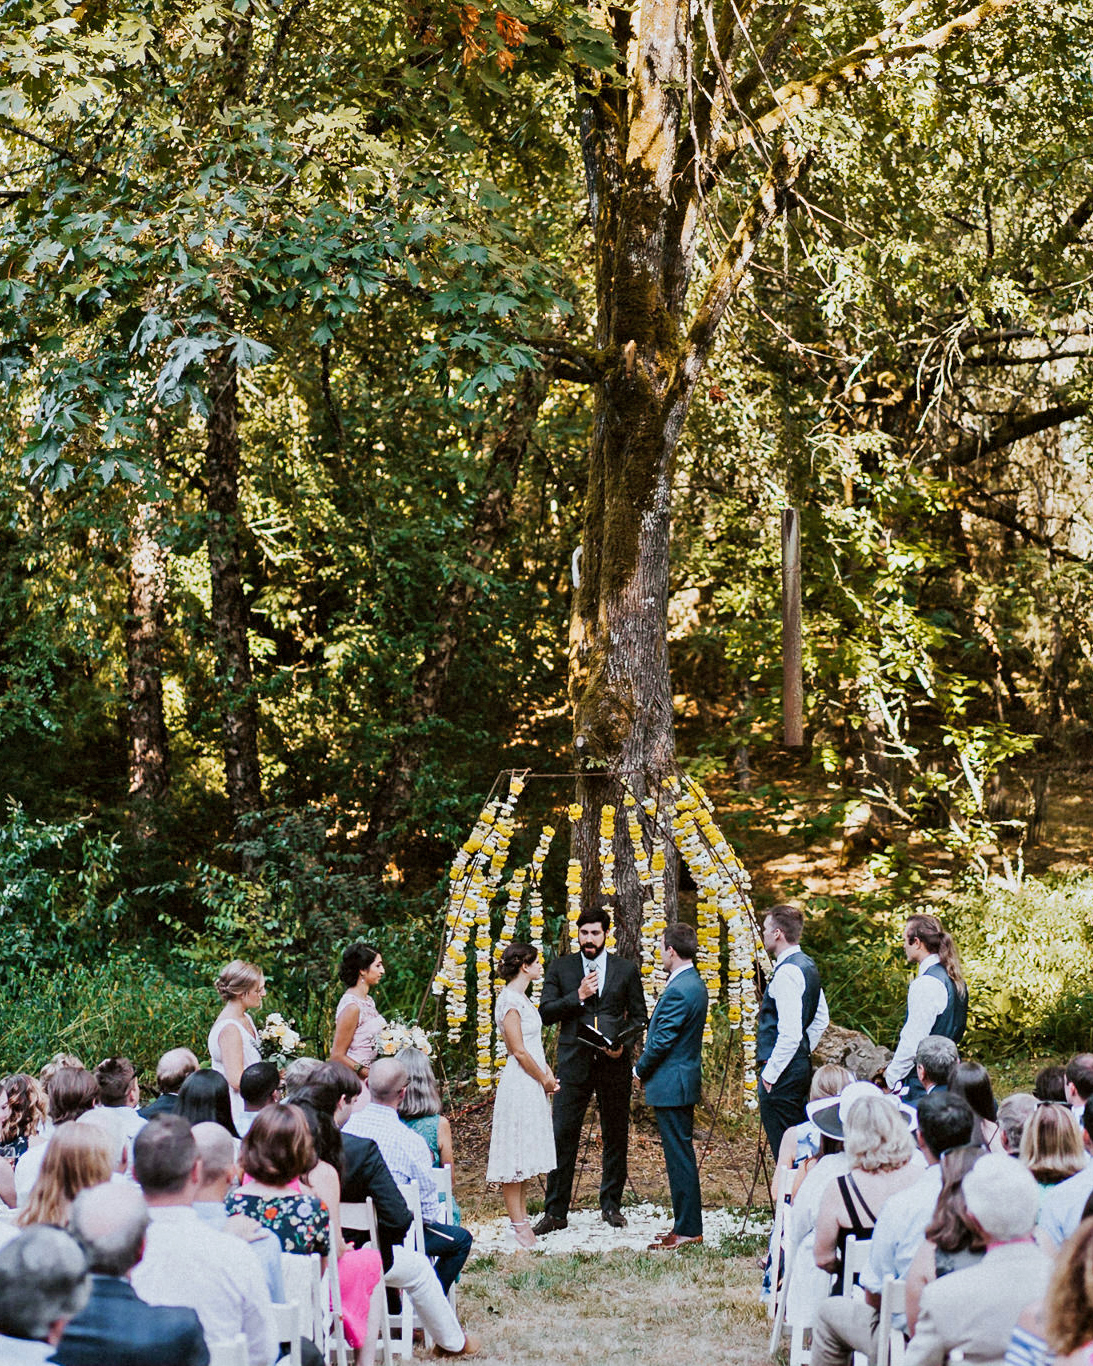 amy nick wedding ceremony tree